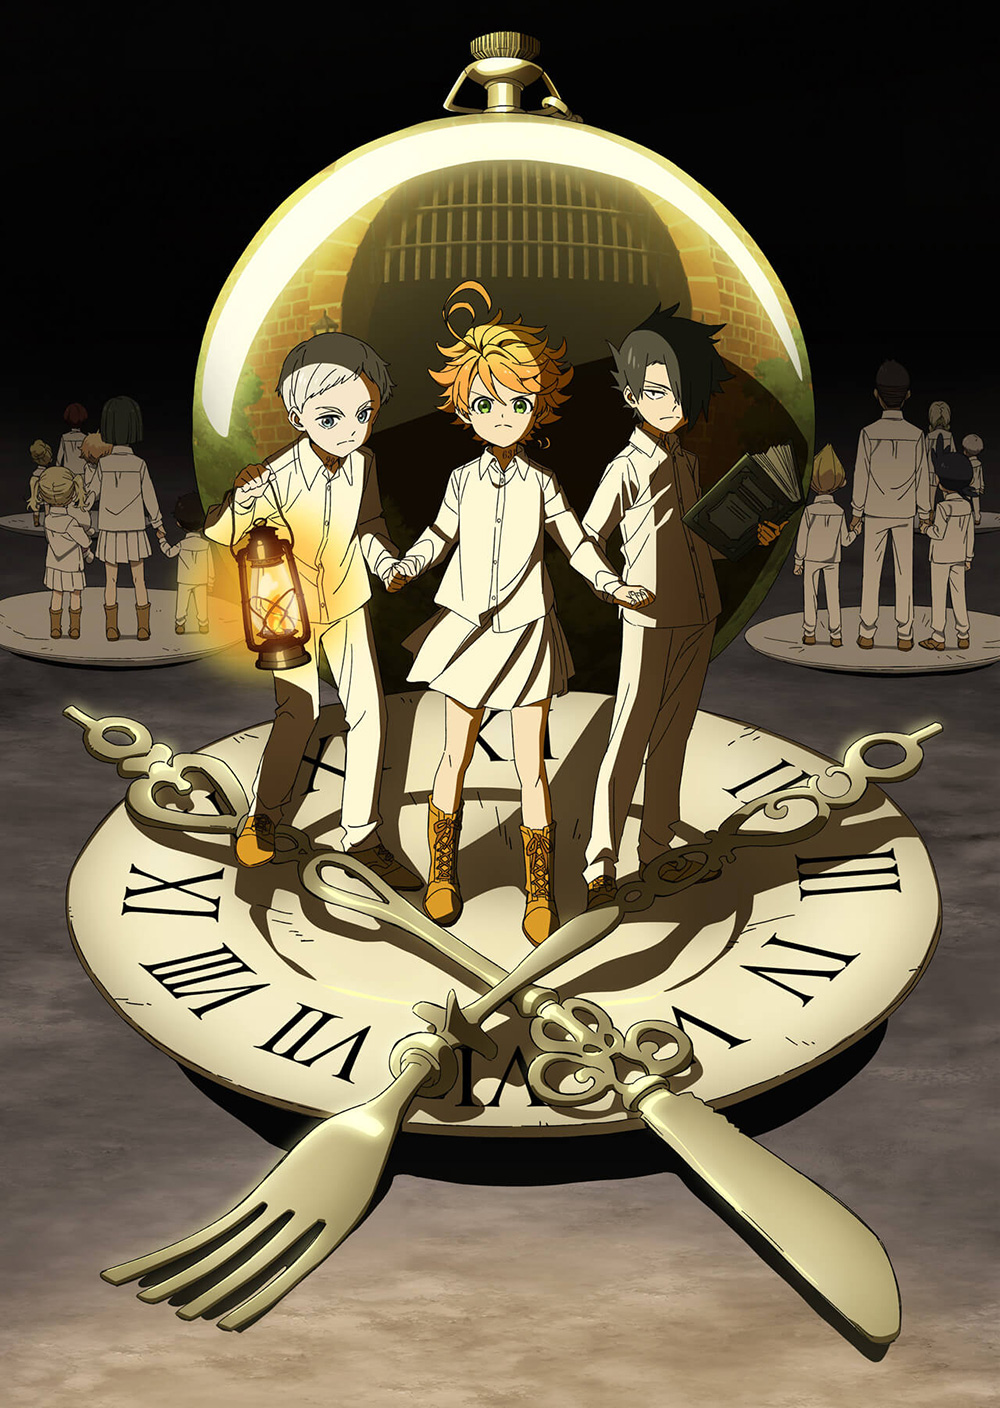 The-Promised-Neverland-Anime-Visual